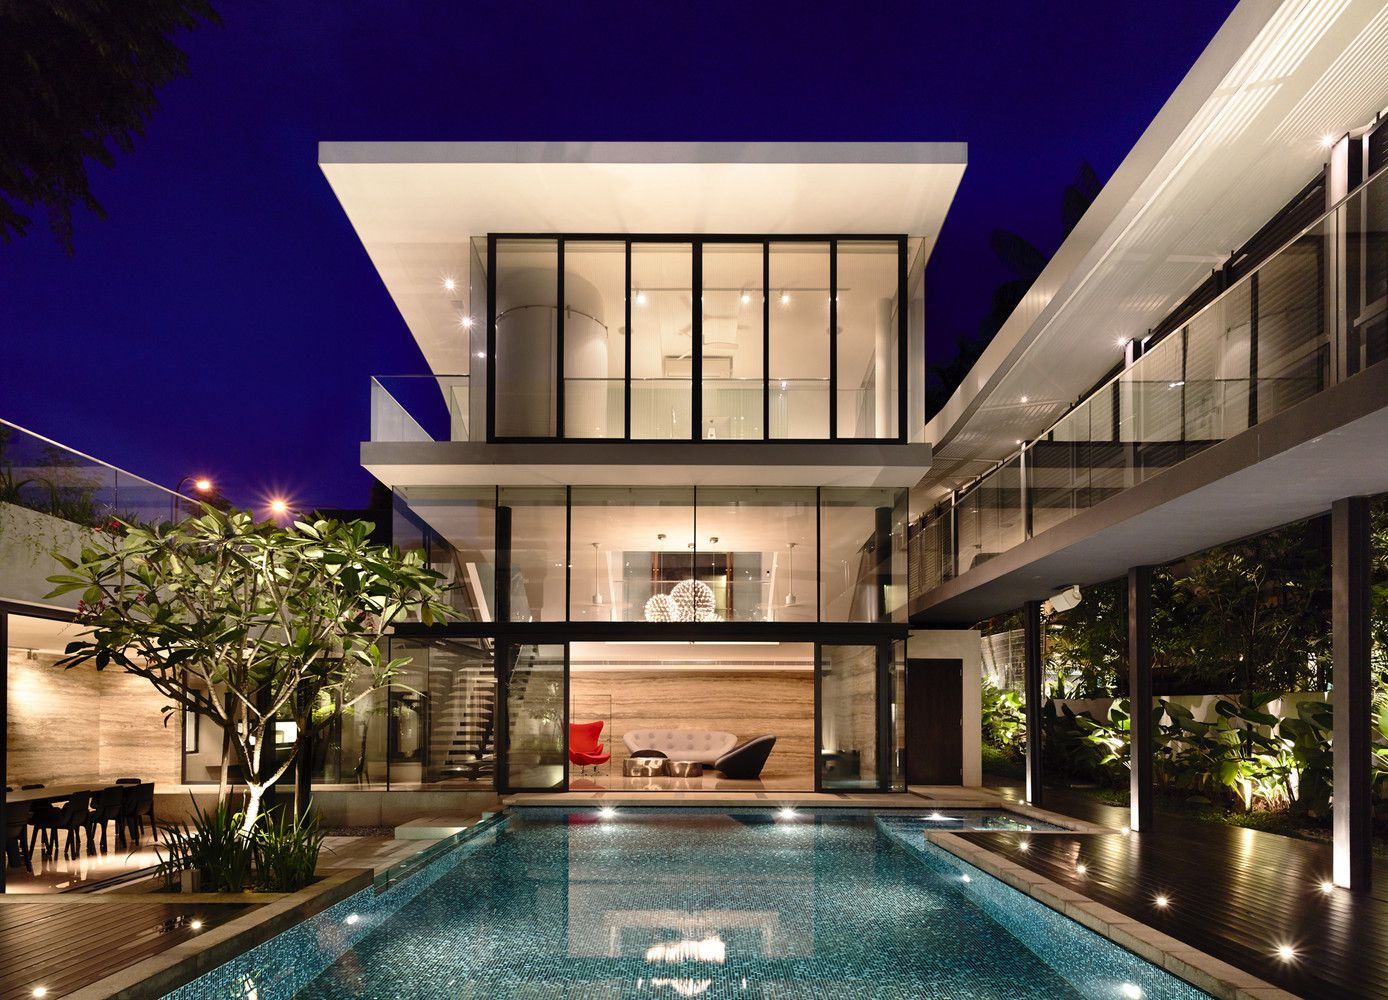 Andrew Road Contemporary Residence in Singapore by A D LAB